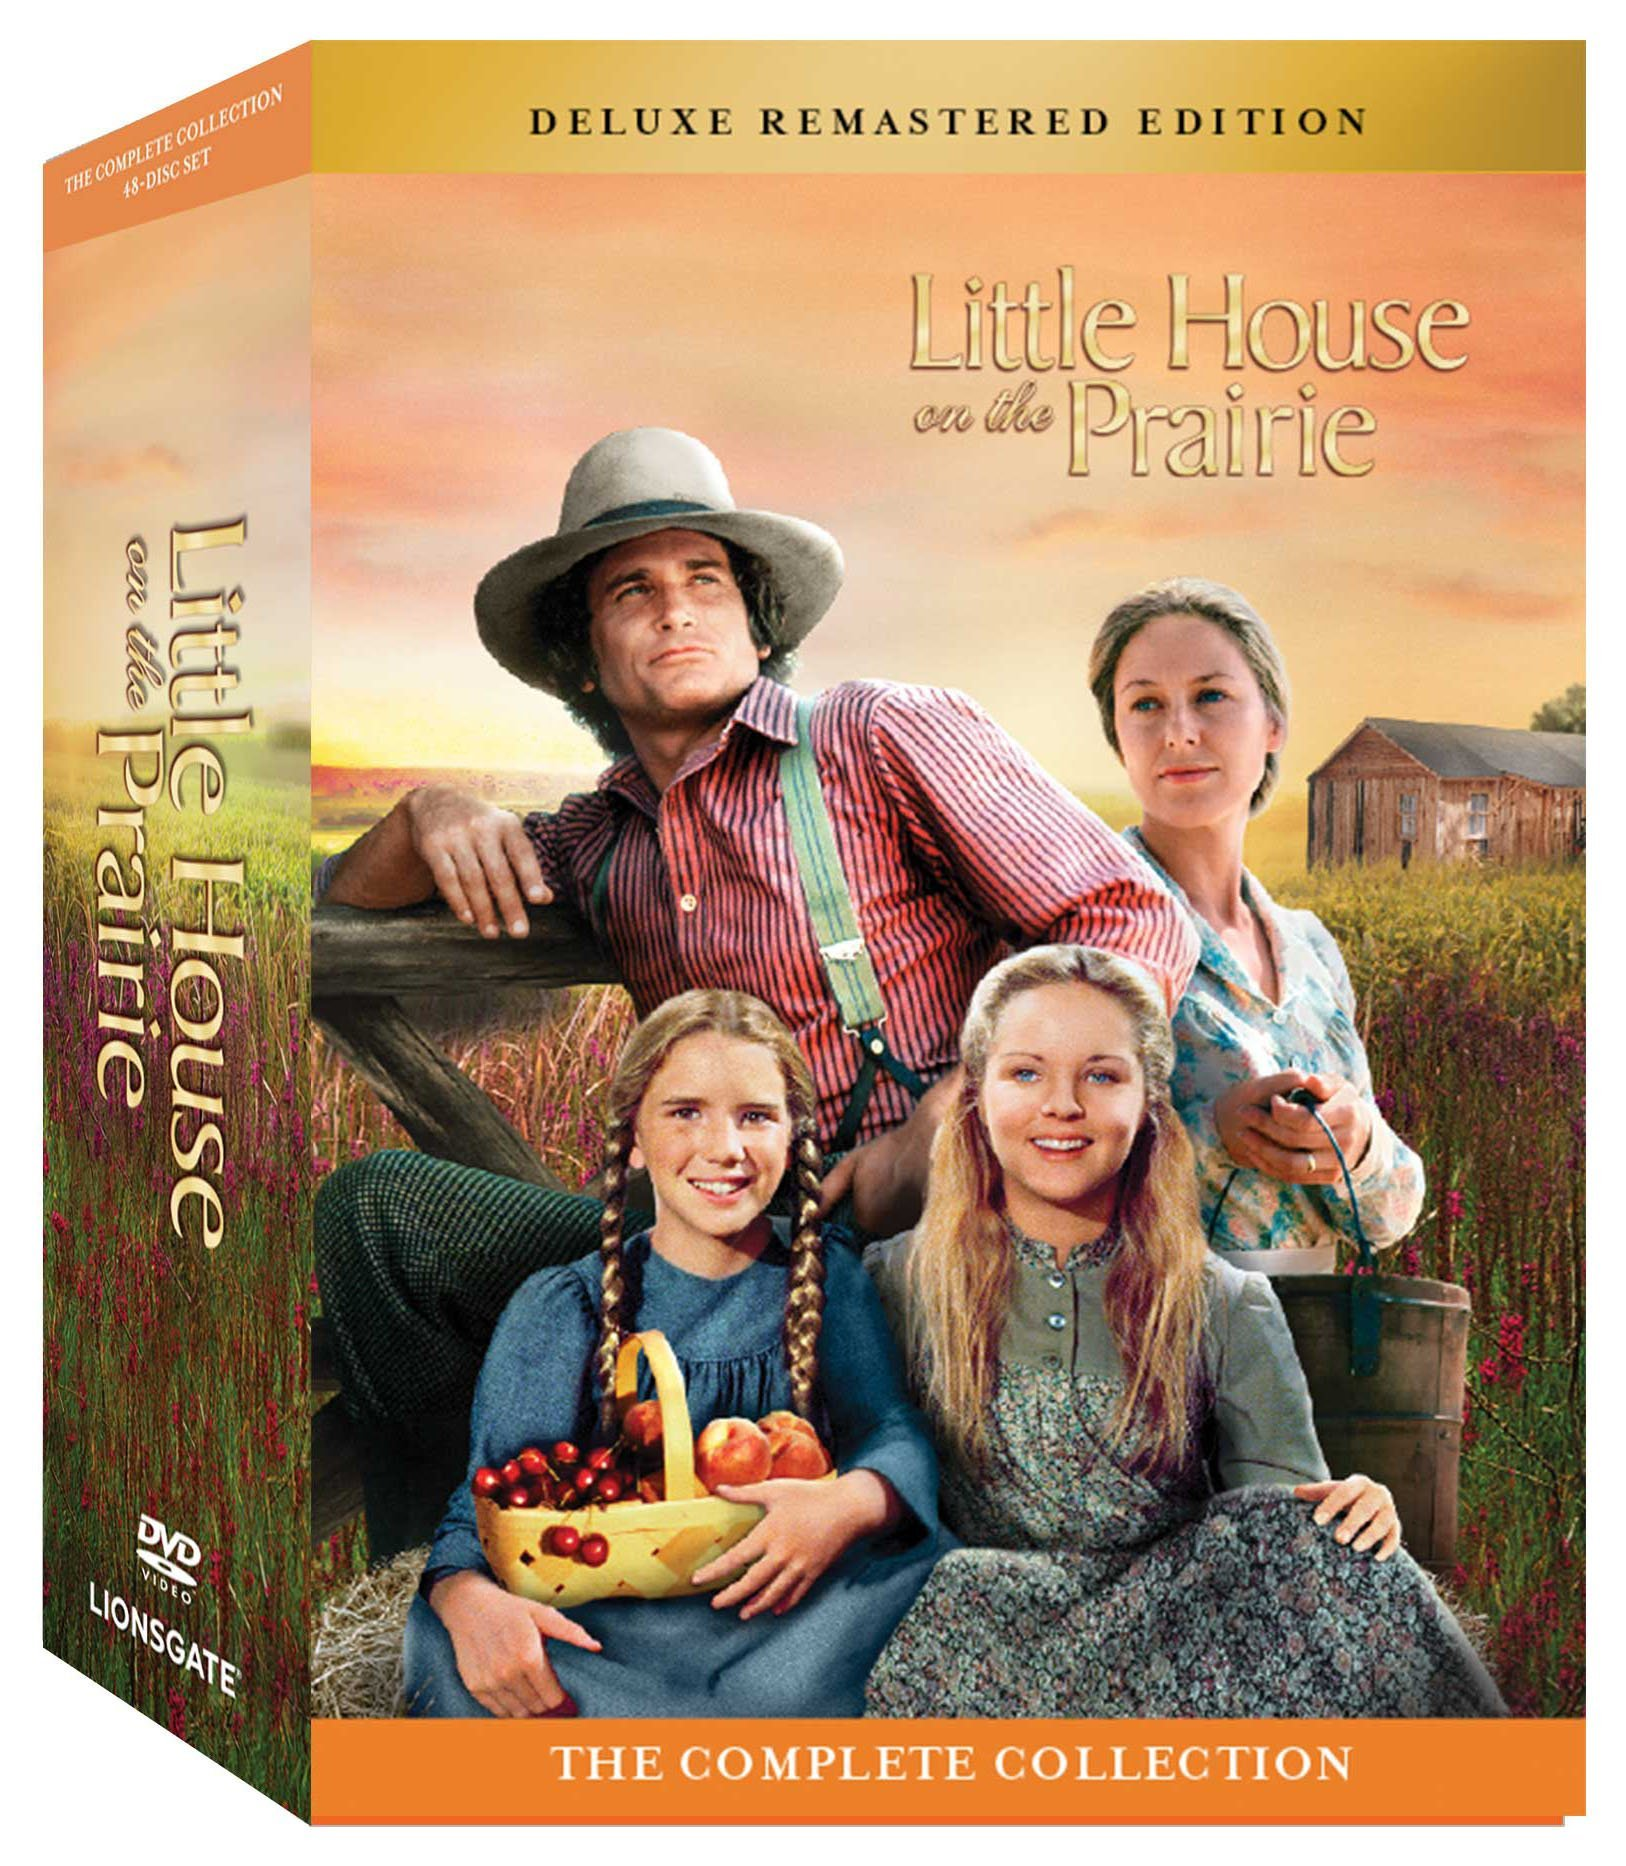 Little House on the Prairie: The Complete Series [Deluxe Remastered Edition] by HarperCollins Christian Pub.